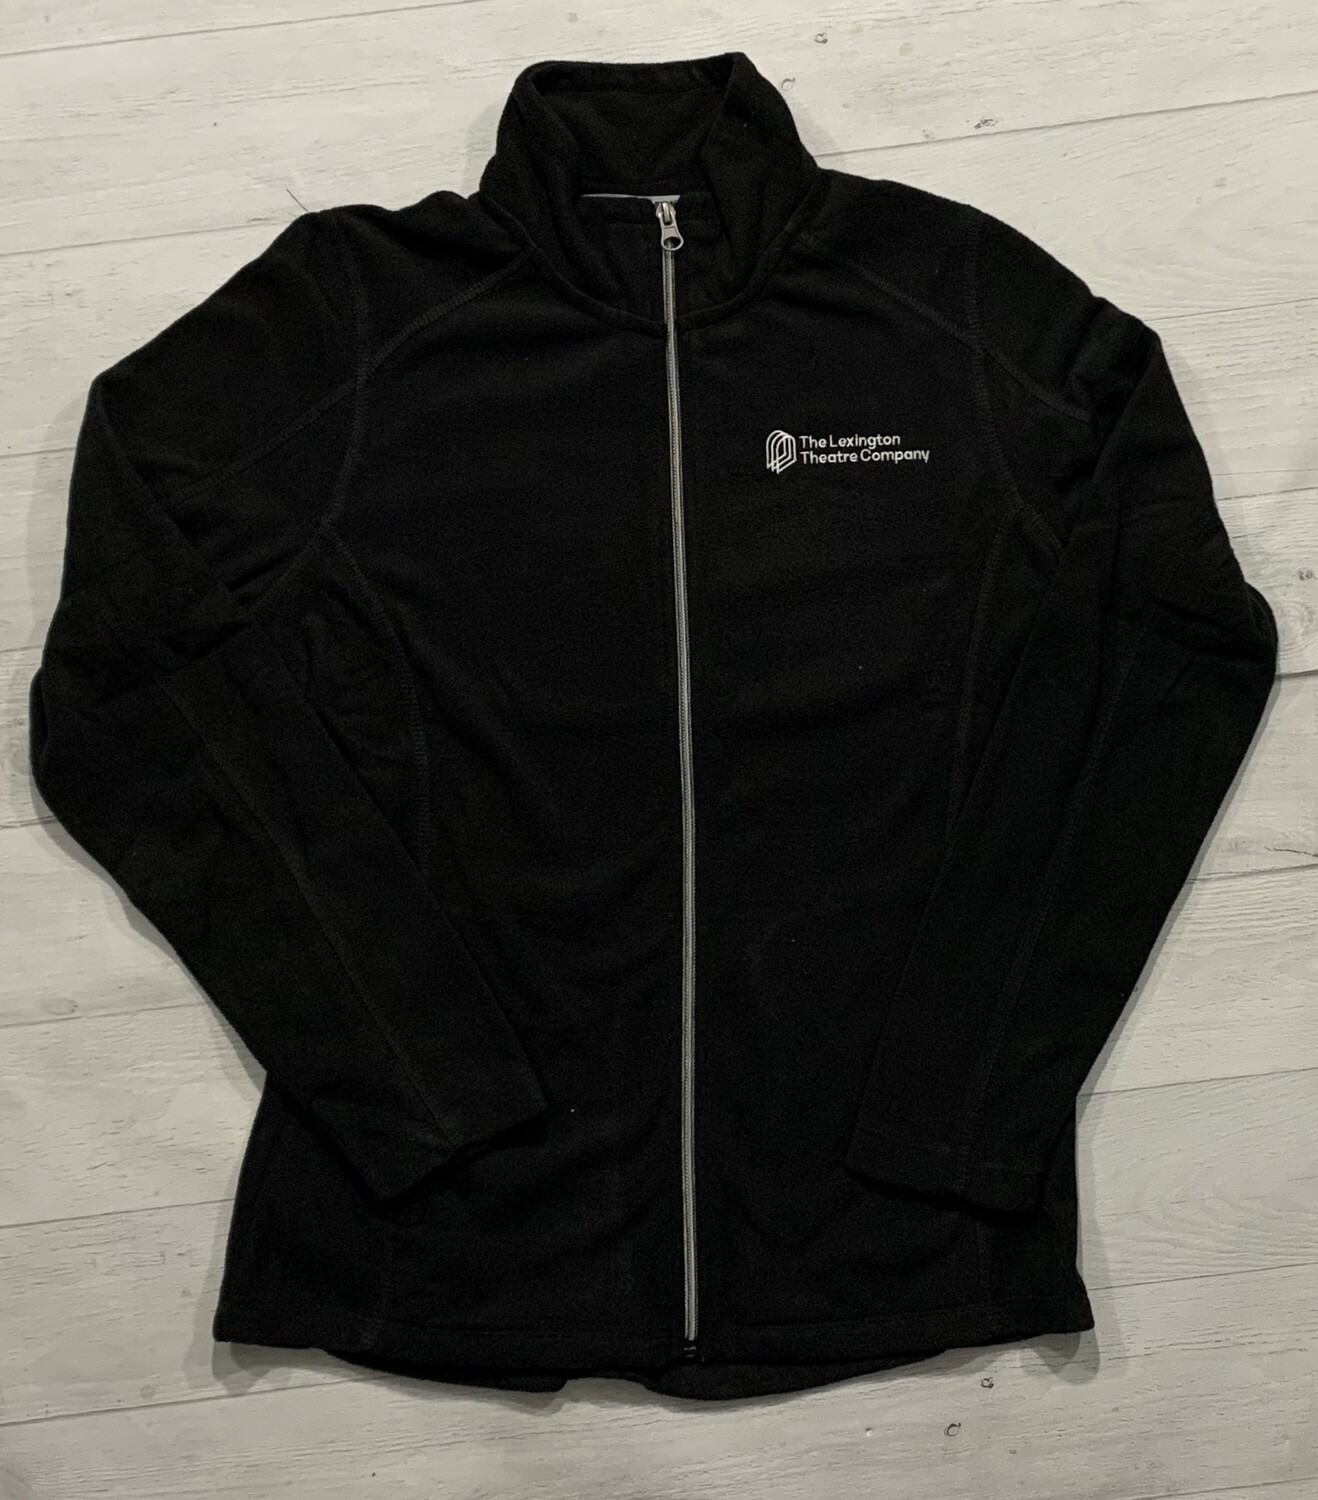 Unisex Port Authority® Black Microfleece Jacket